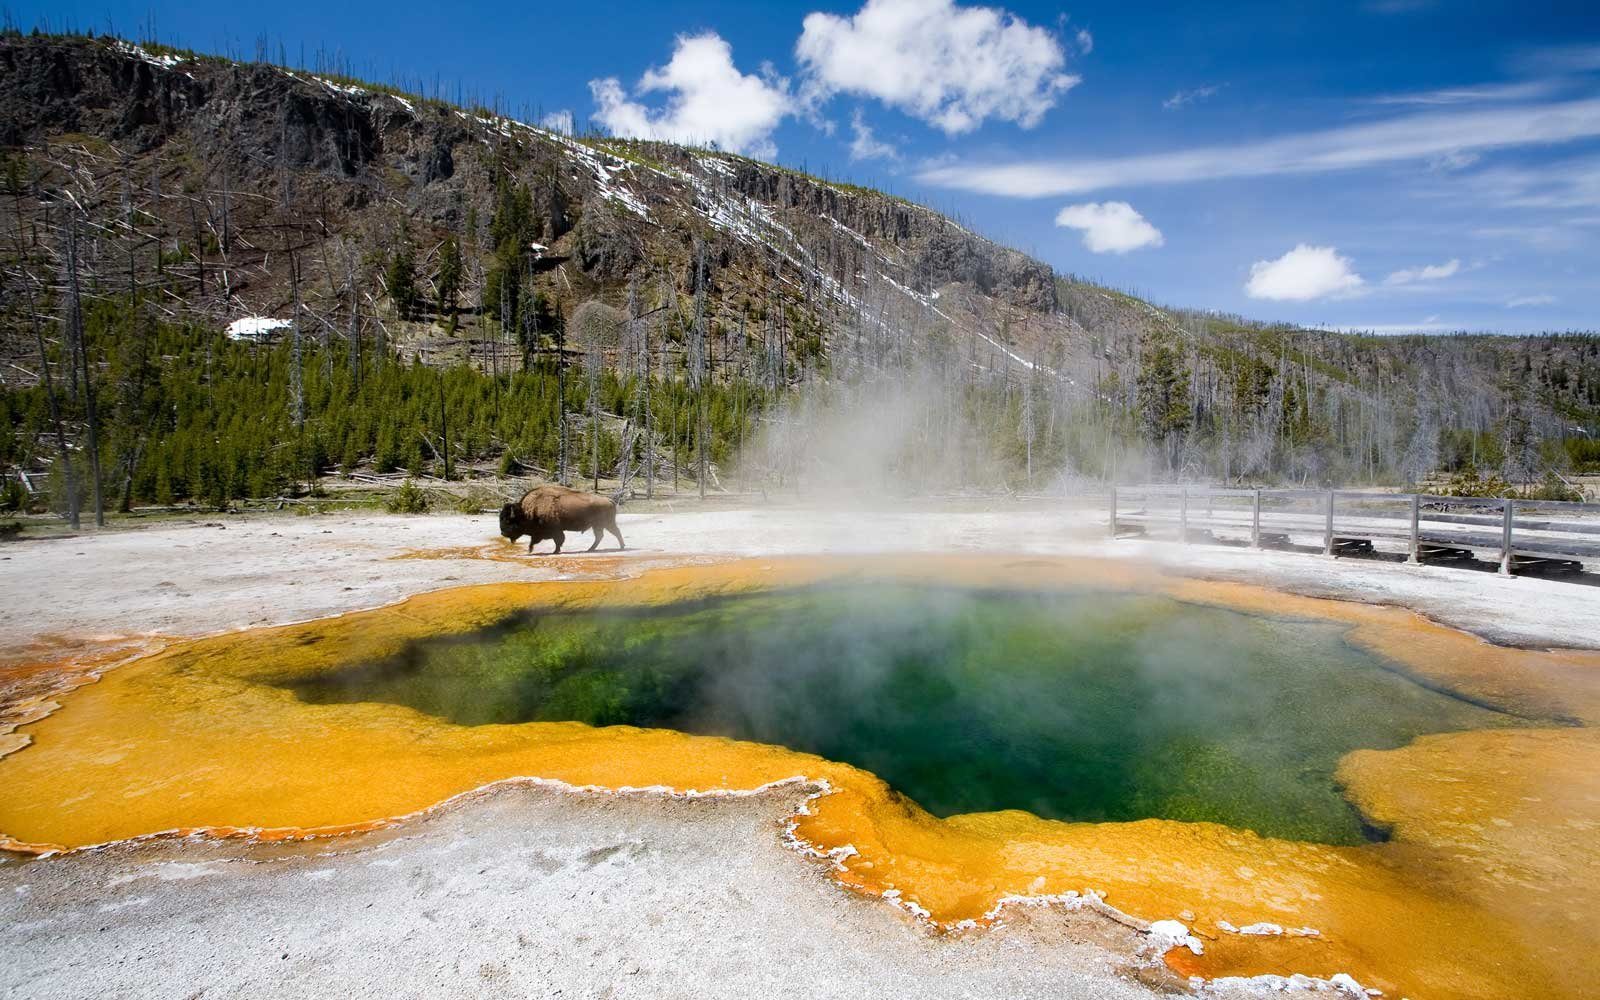 Paris Accords Will Protect Yellowstone National Park